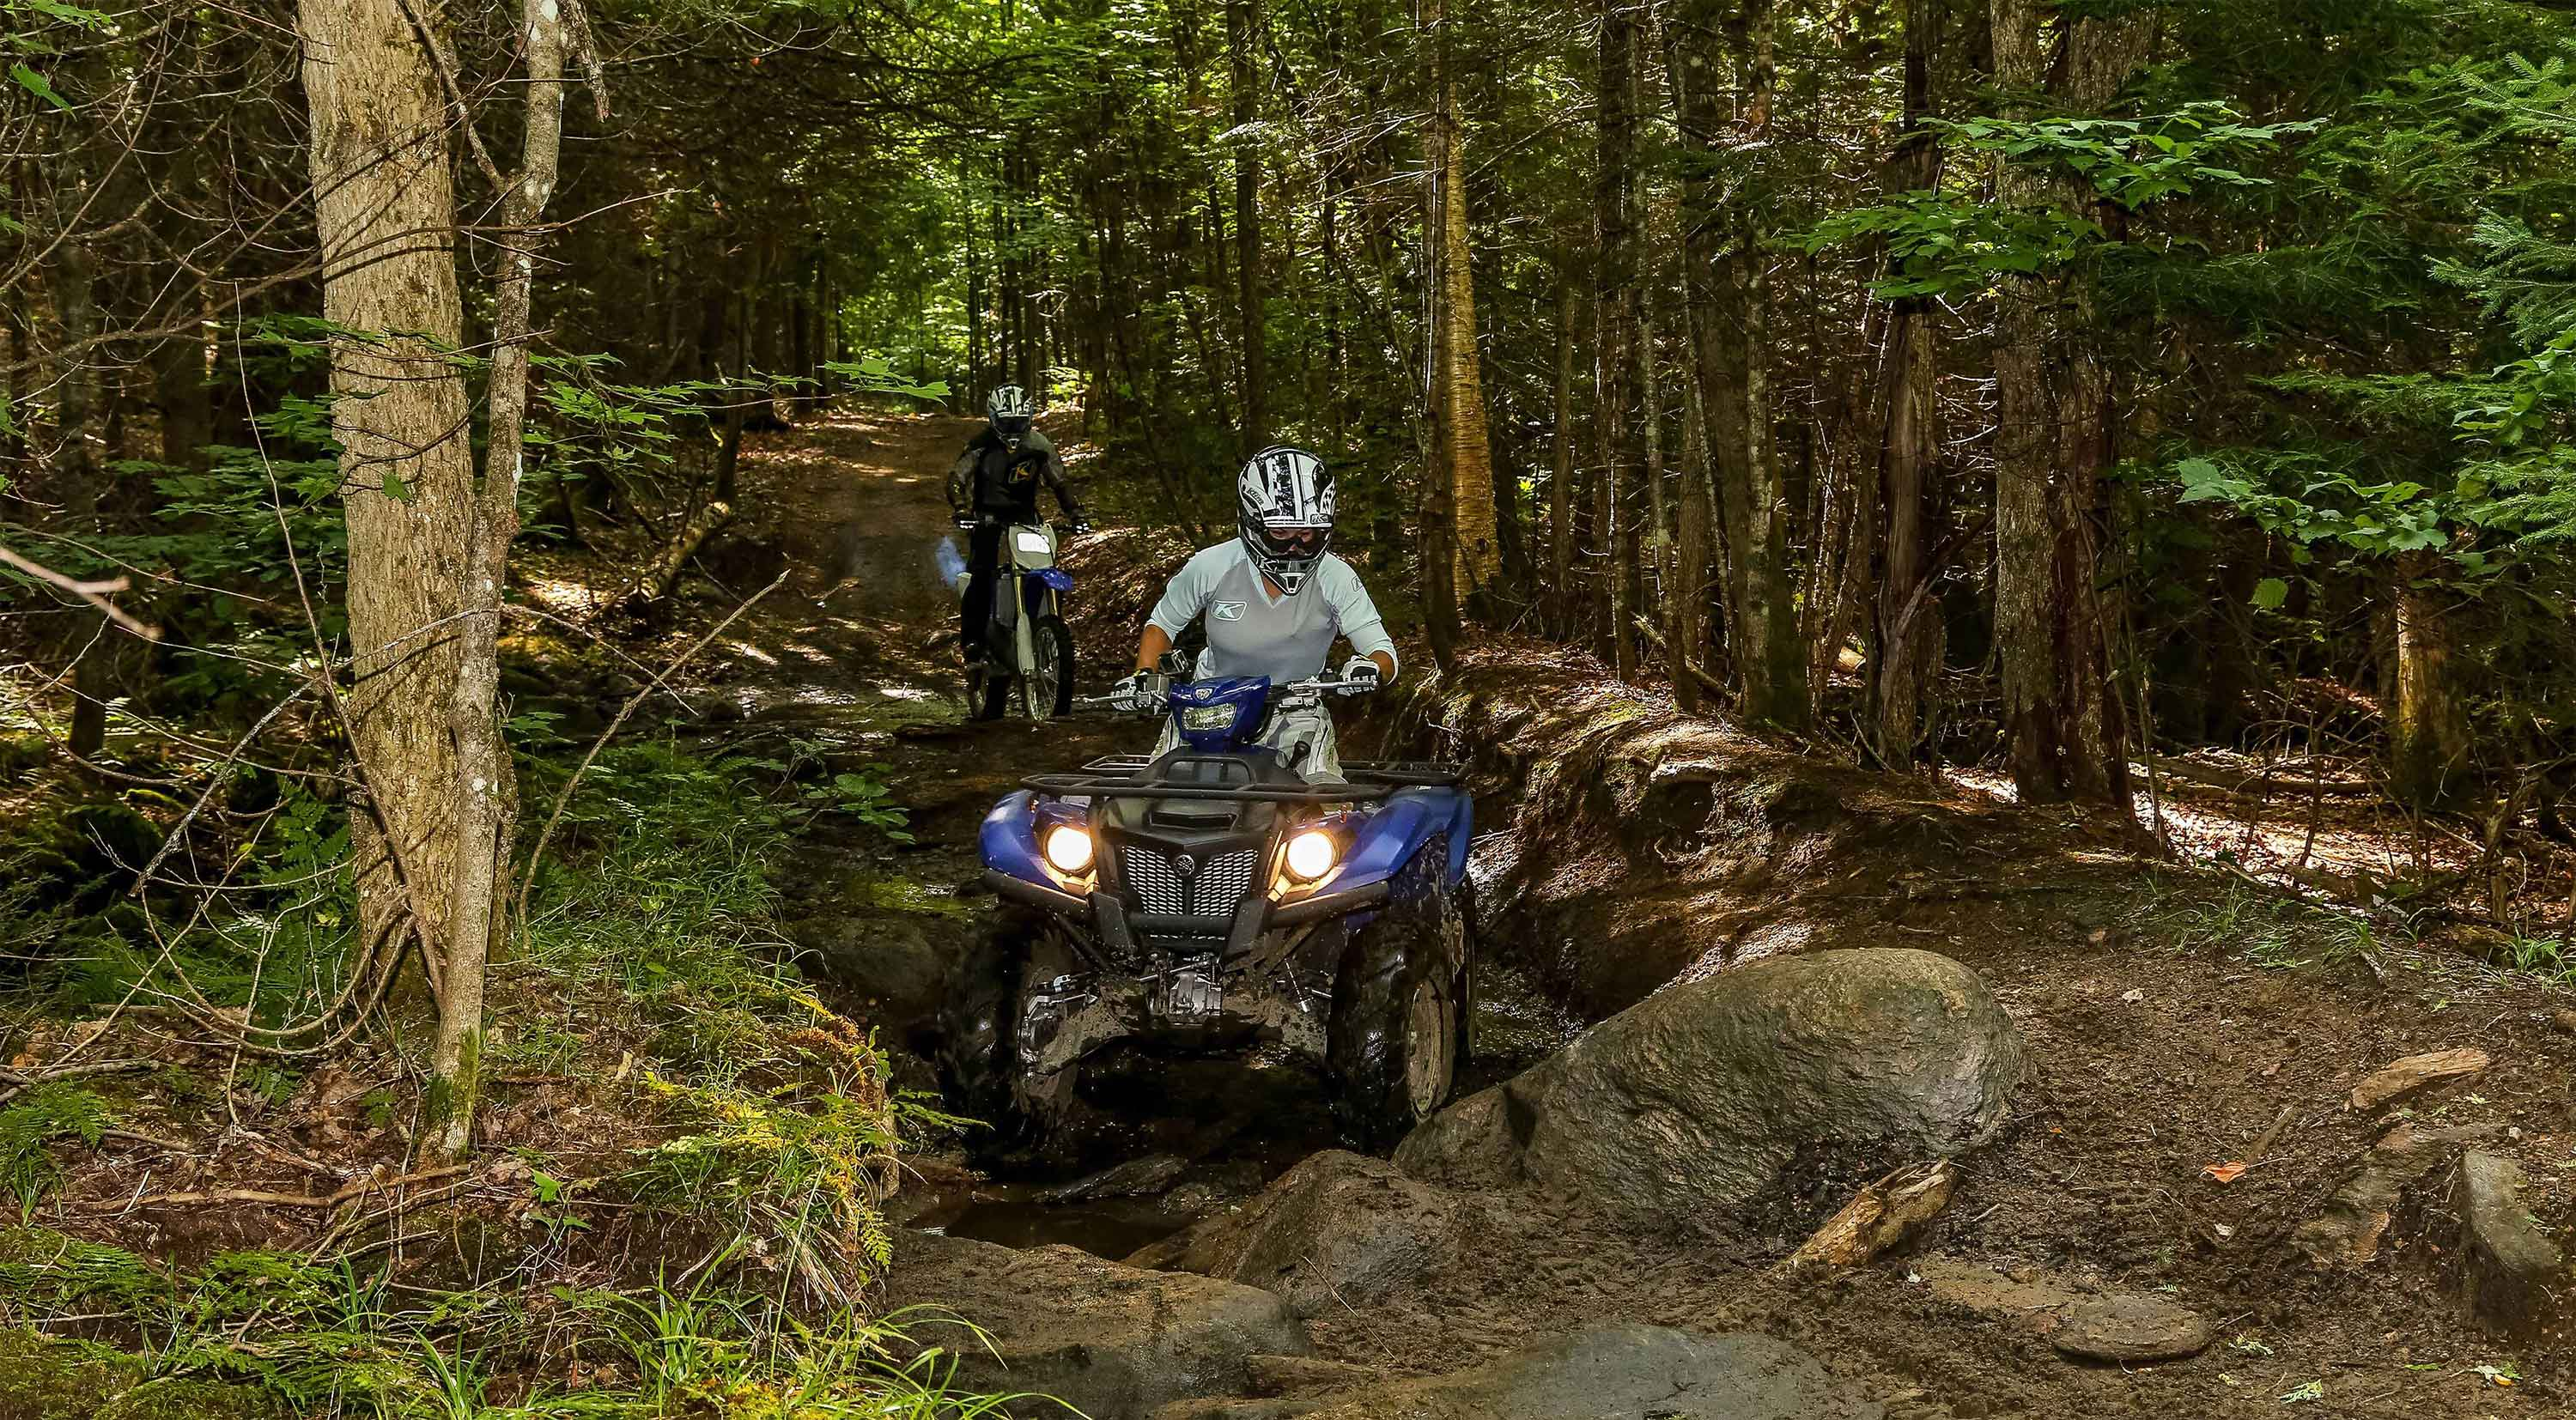 In the forest, a person rides an ATV and another person rides a dirt bike